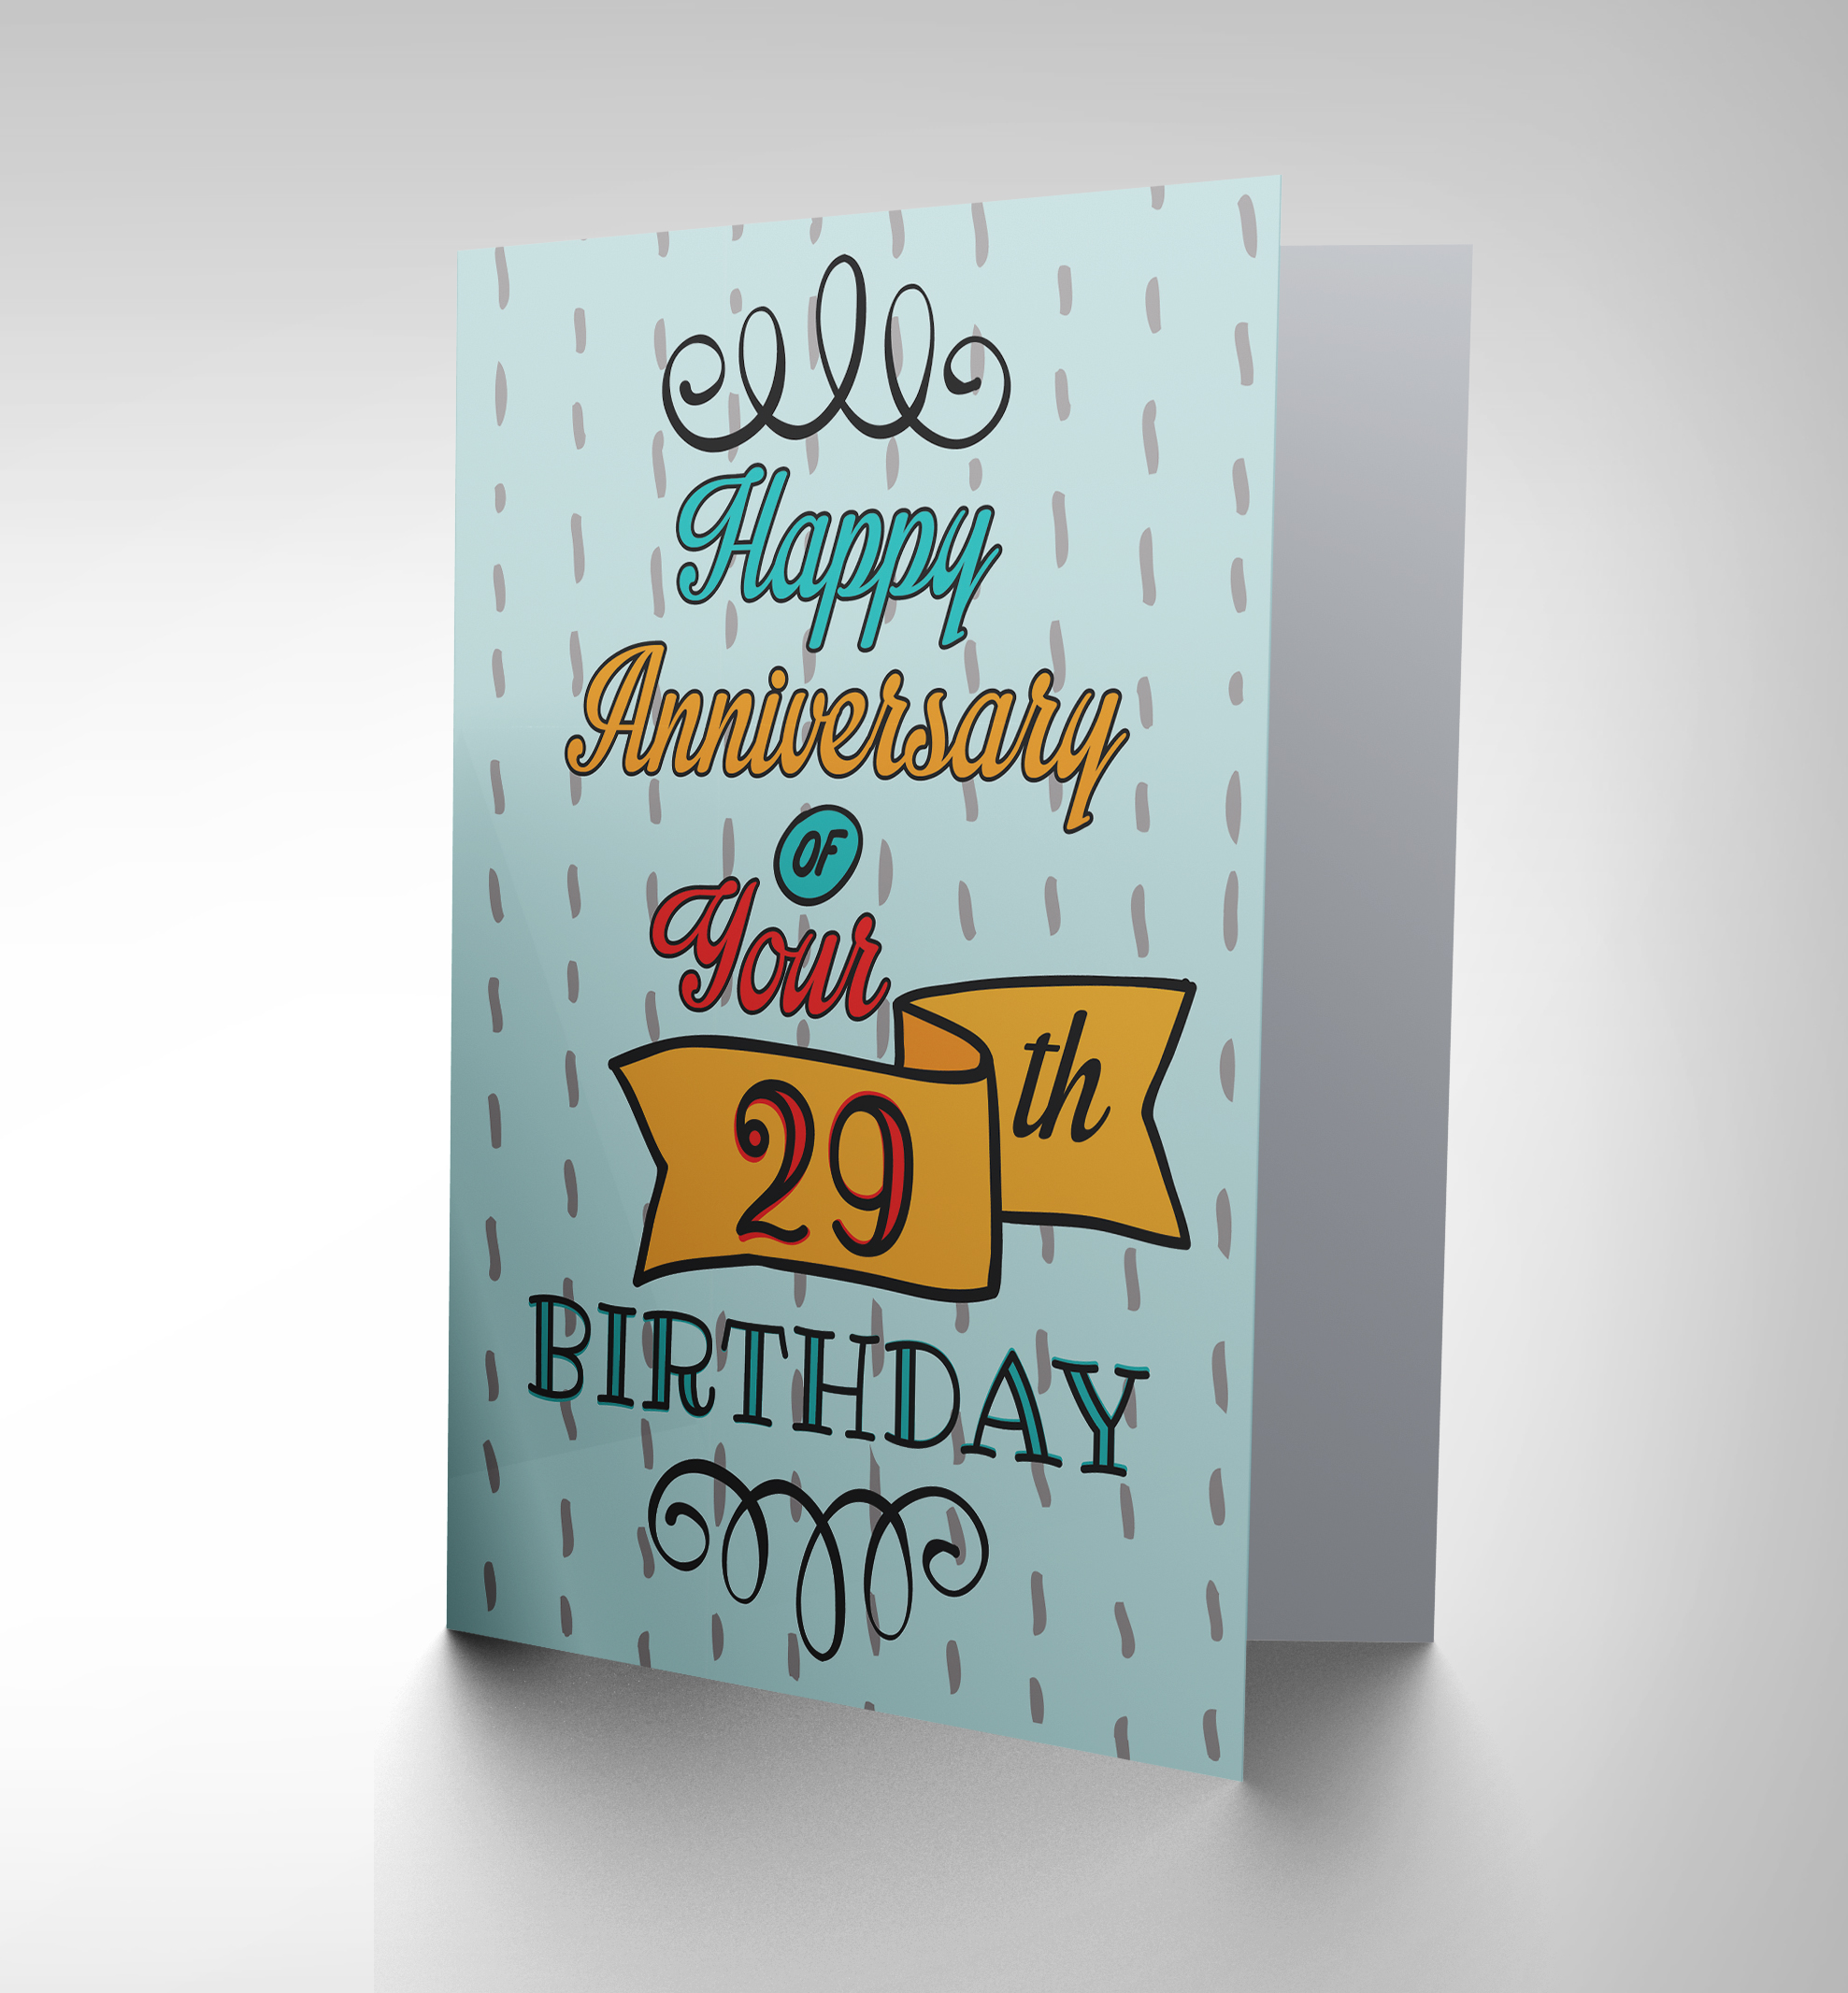 CARD GREETING HAPPY BIRTHDAY 29TH ANNIVERSARY FOREVER